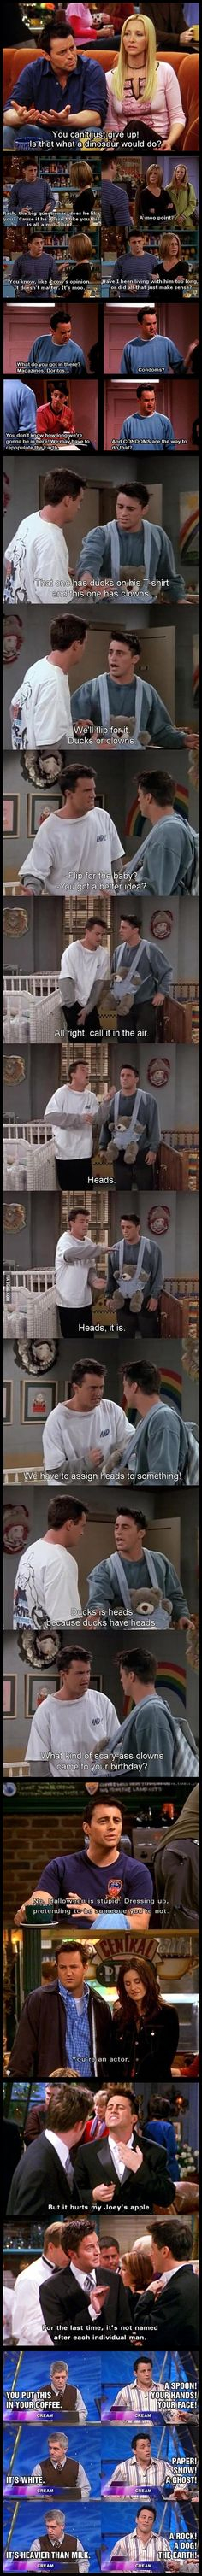 Joey Tribbiani.